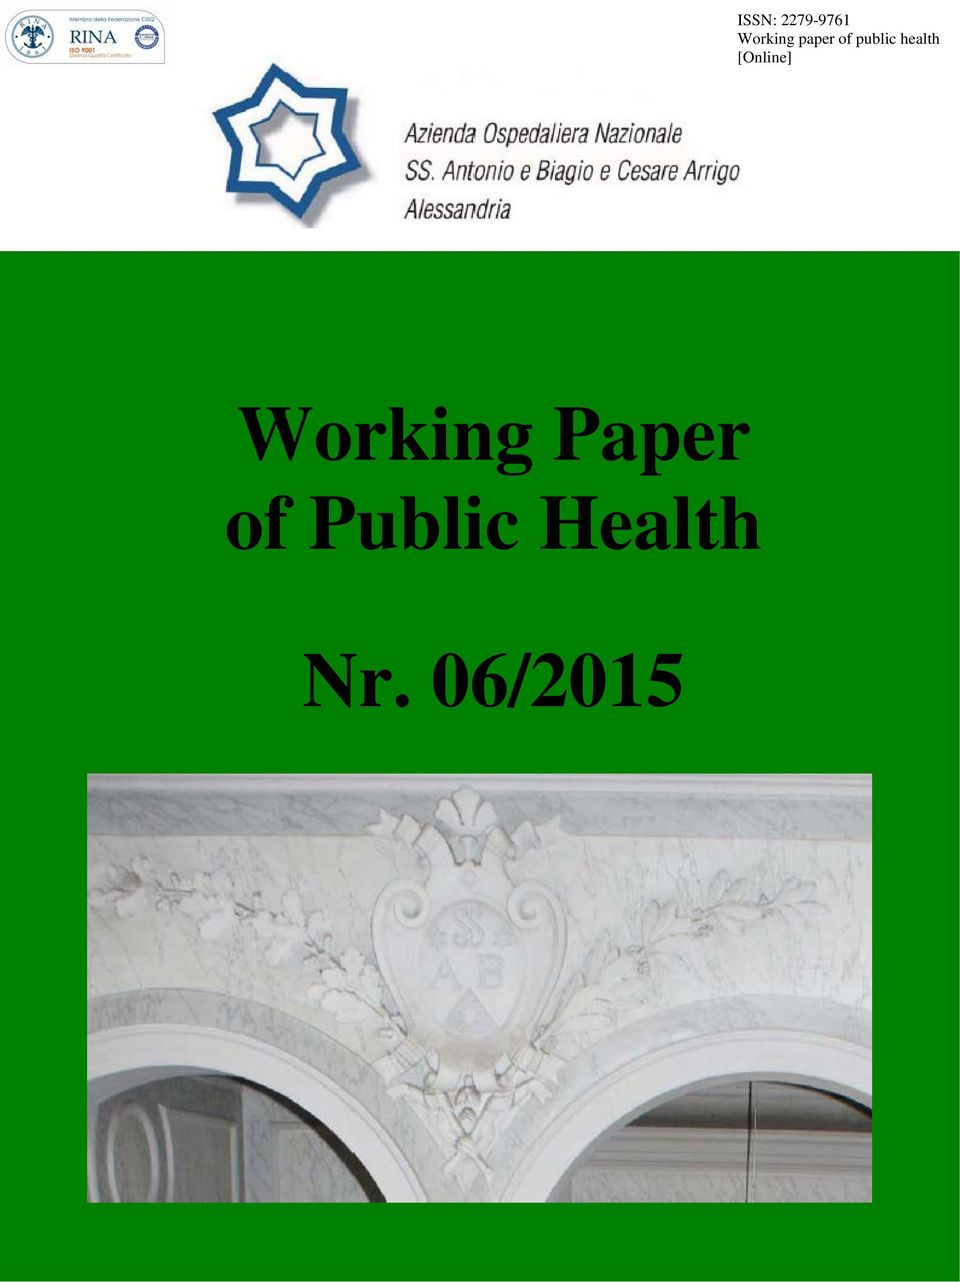 [Online] Working Paper